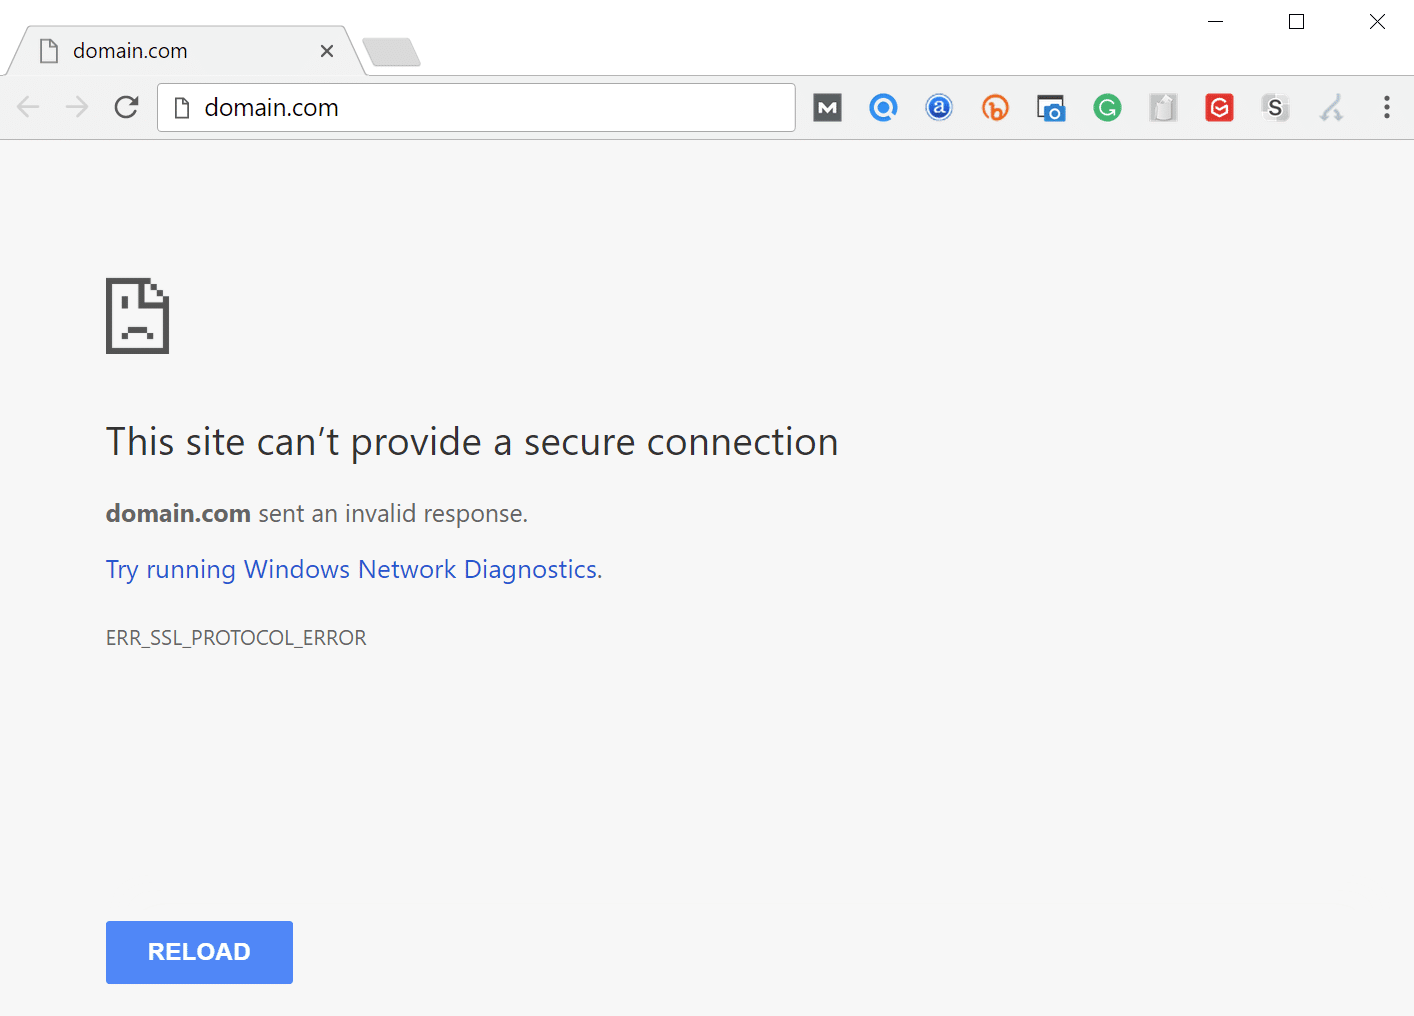 ERR_SSL_PROTOCOL_ERROR dans chrome